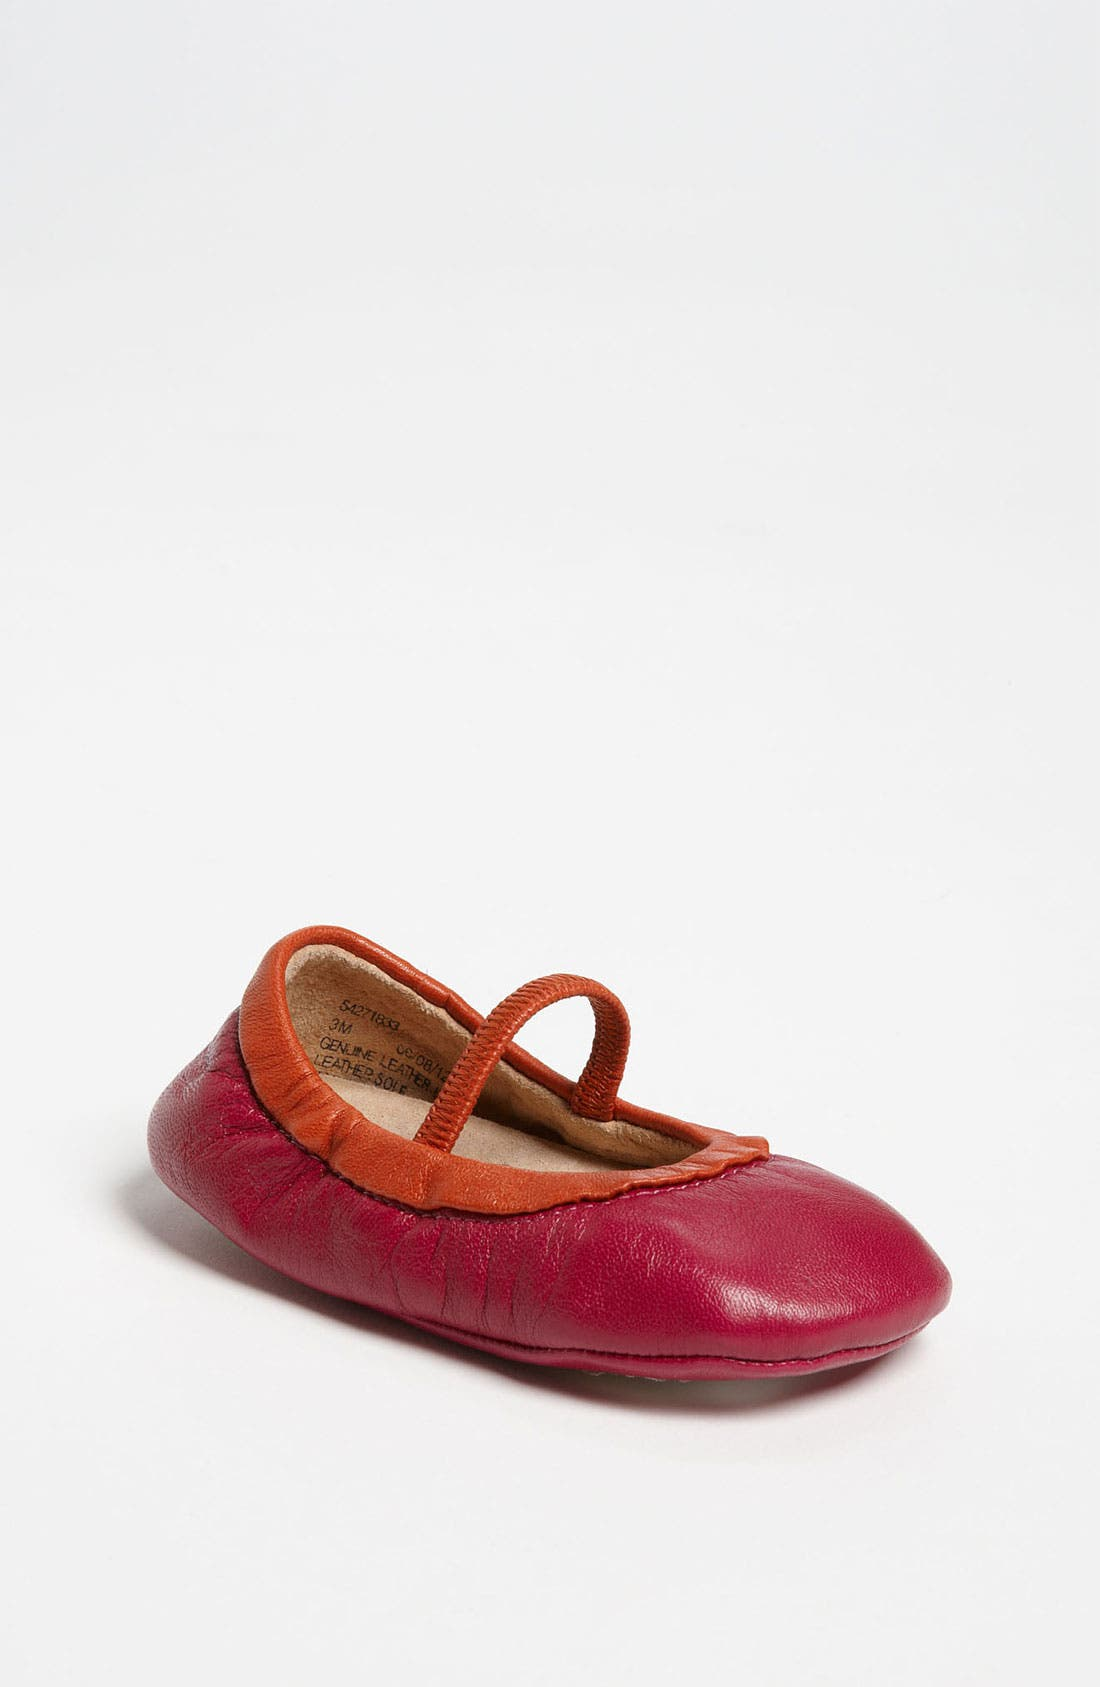 Alternate Image 1 Selected - Peek 'Prose' Crib Shoe (Baby)